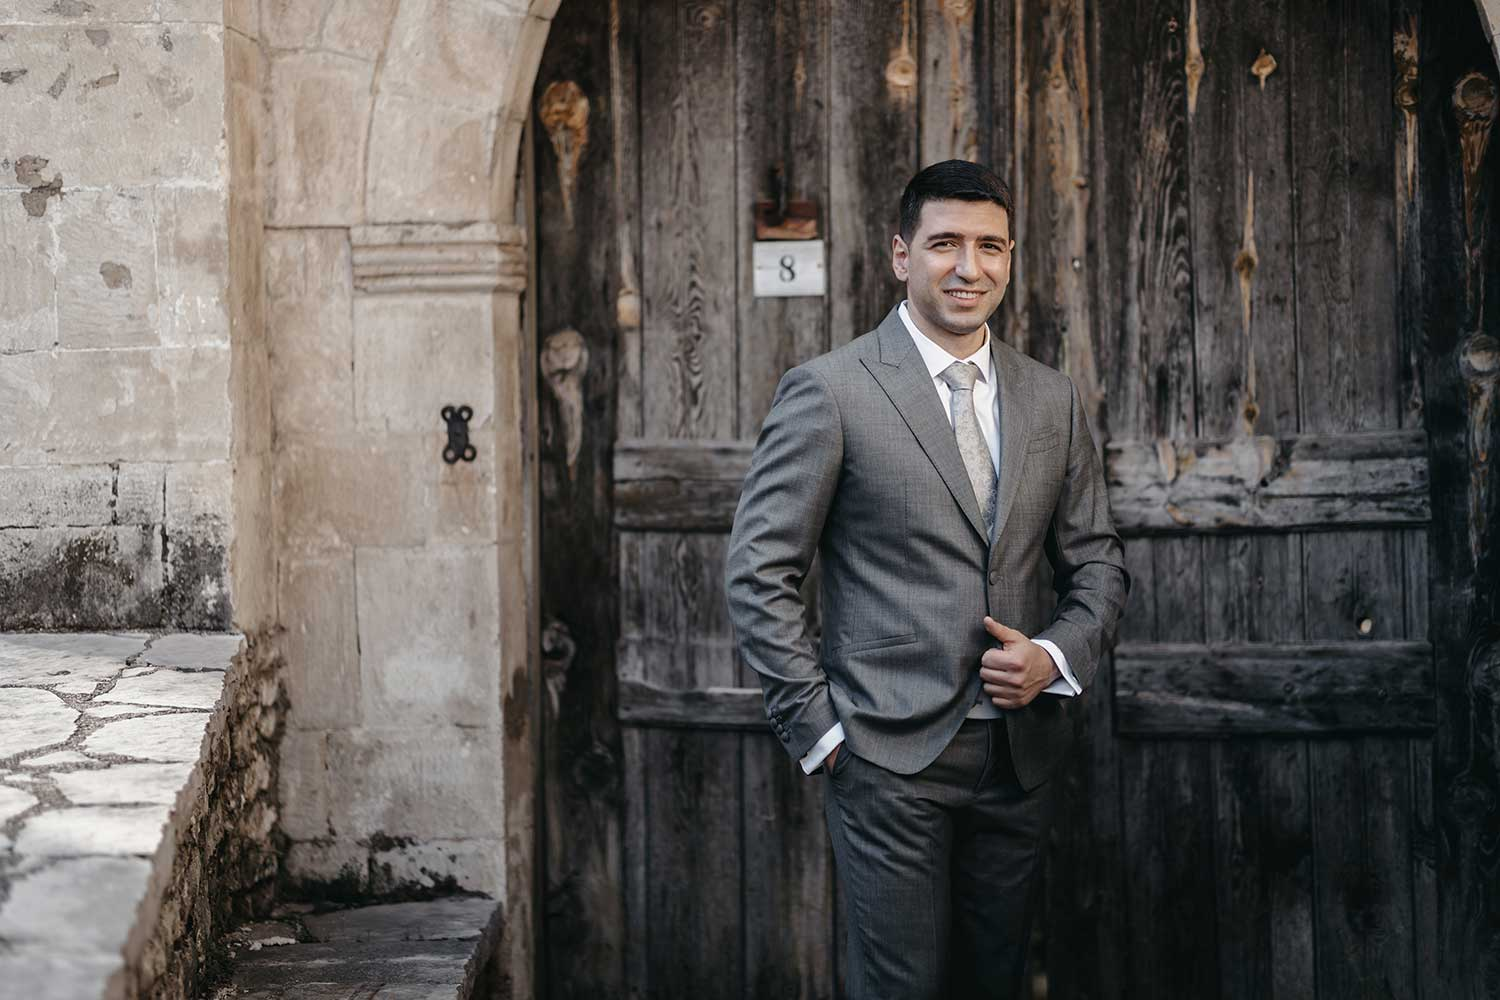 Groom posing in front of an old door